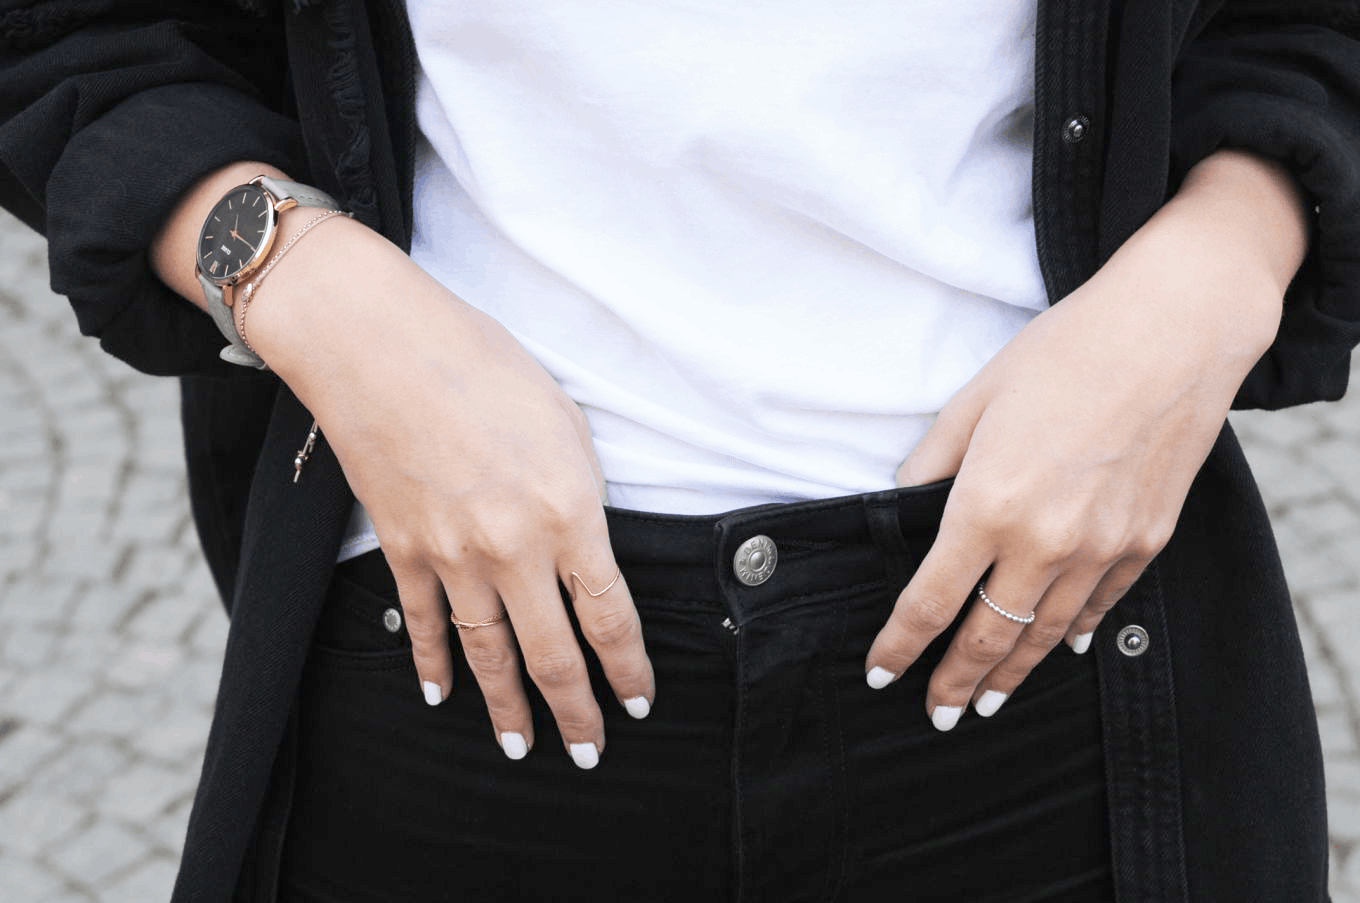 Unique rings and a sophisticated watch on campus at the University of Vienna in Austria. Student Anika wears white nail polish and rocks skinny black jeans and a white tee shirt.